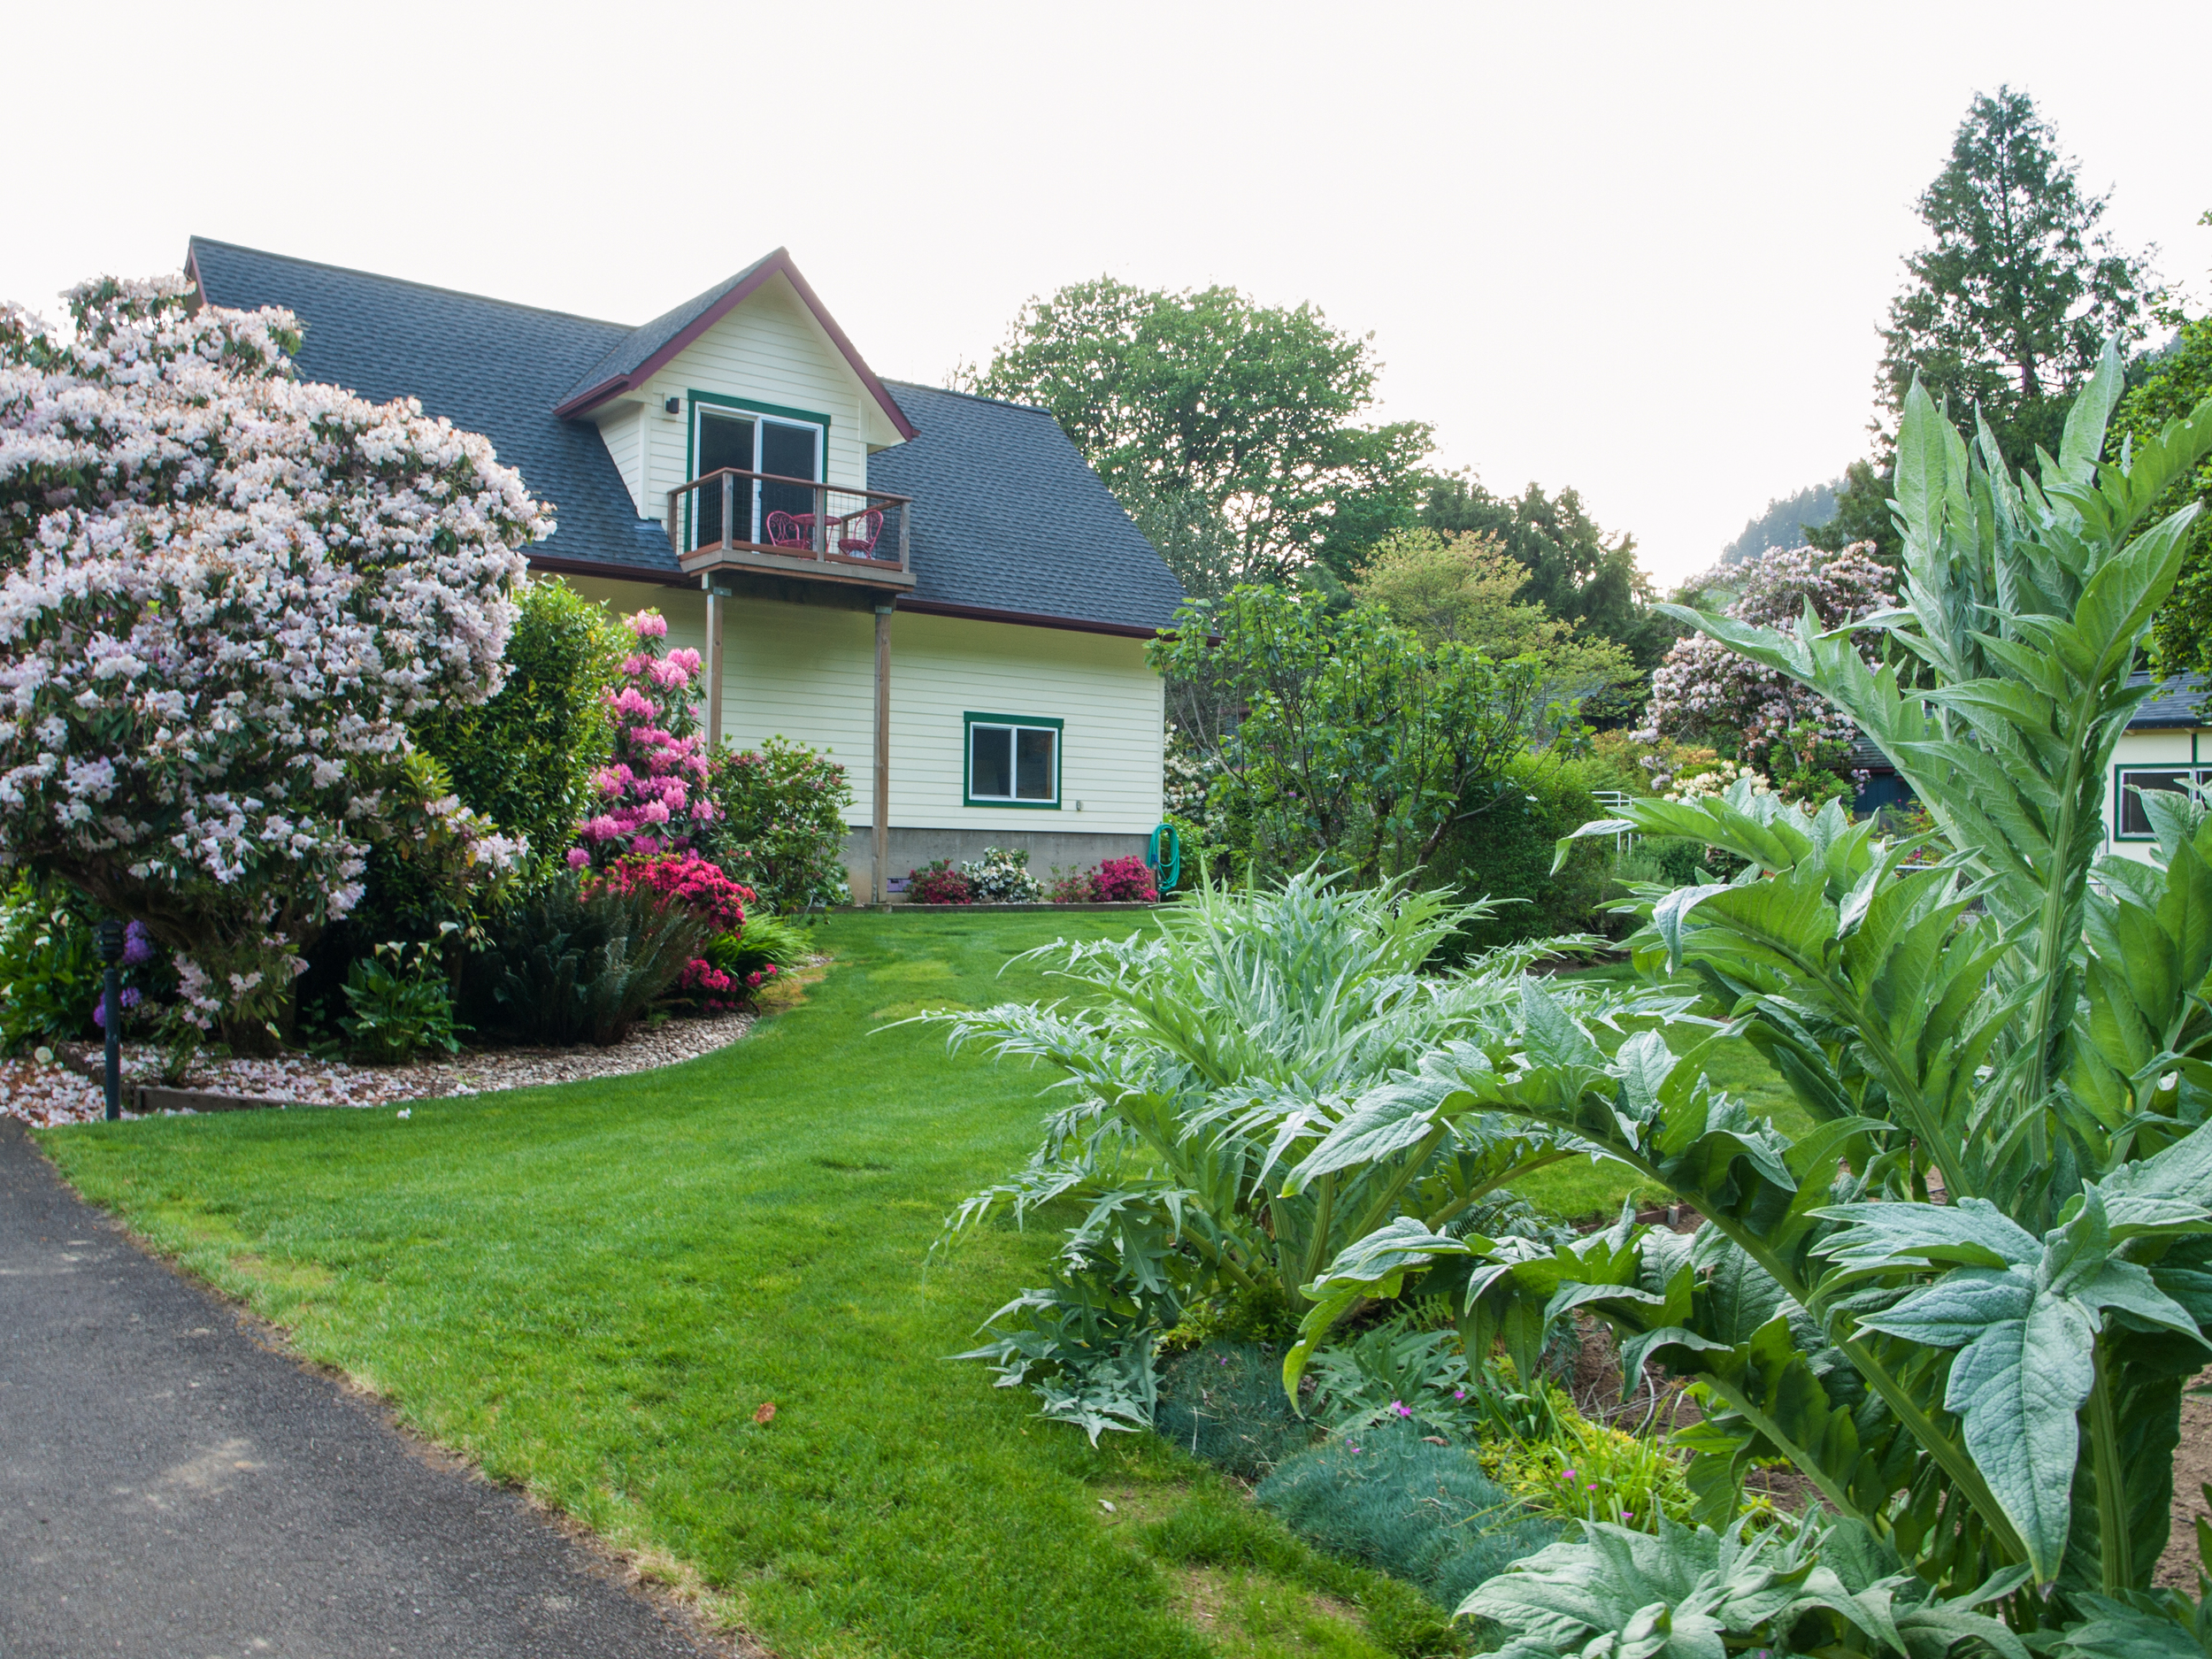 We have fruit trees, flowers, a large garden, chickens and a large lawn in our front yard.